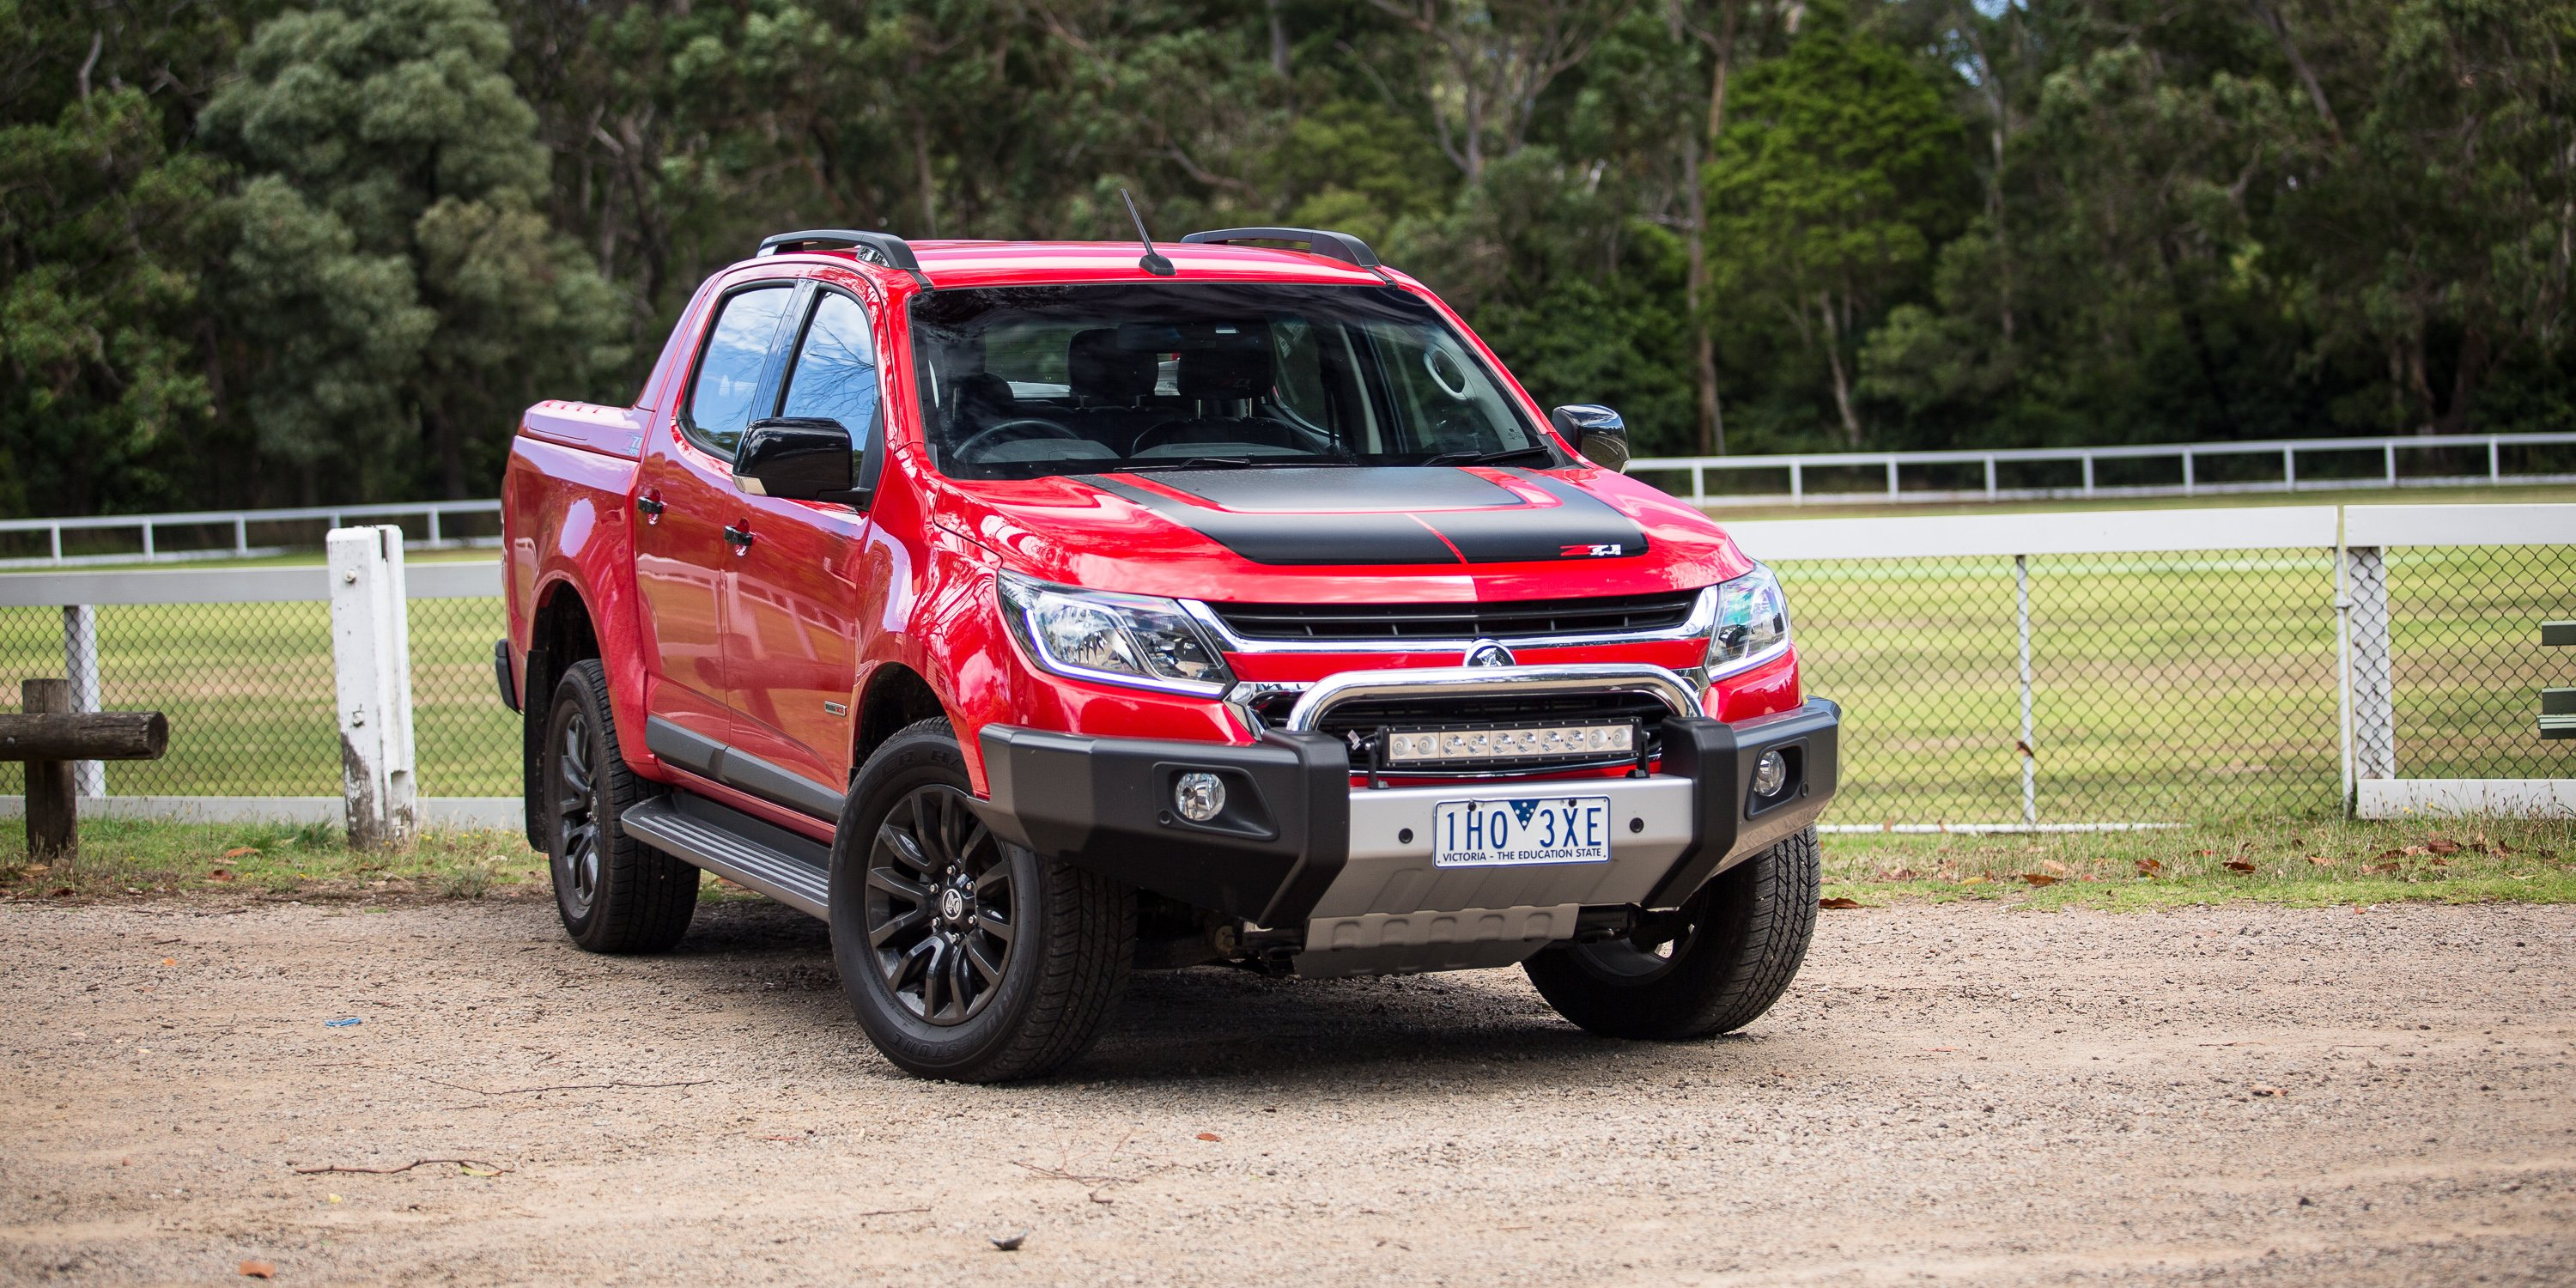 2017 Holden Colorado Z71 review: Long-term report one - Photos